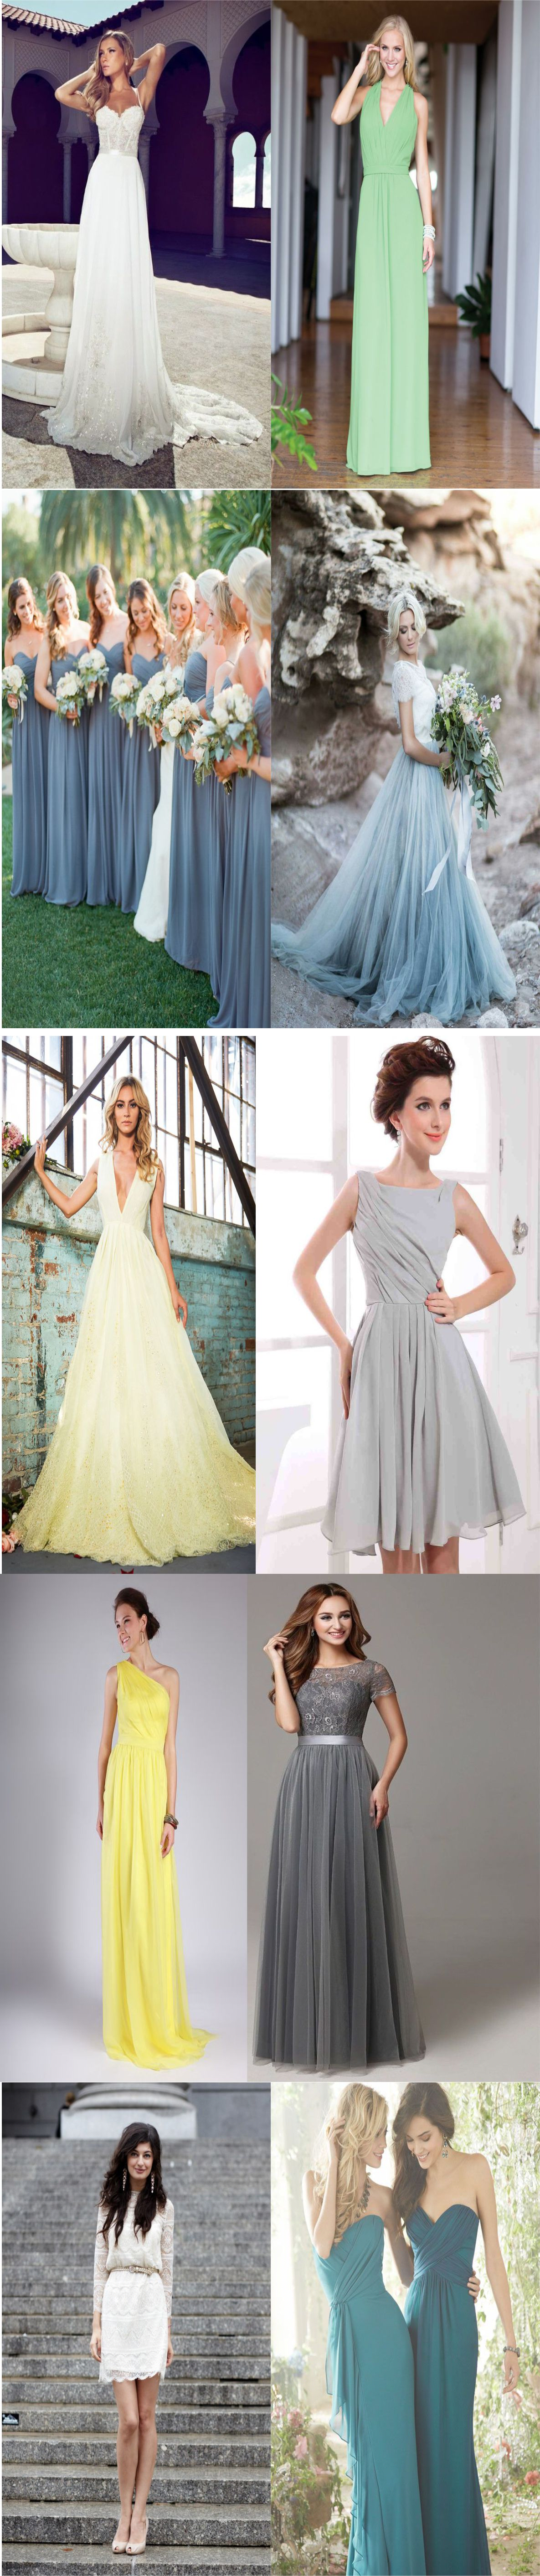 New Beautiful cheap bridesmaid dresses inspirations